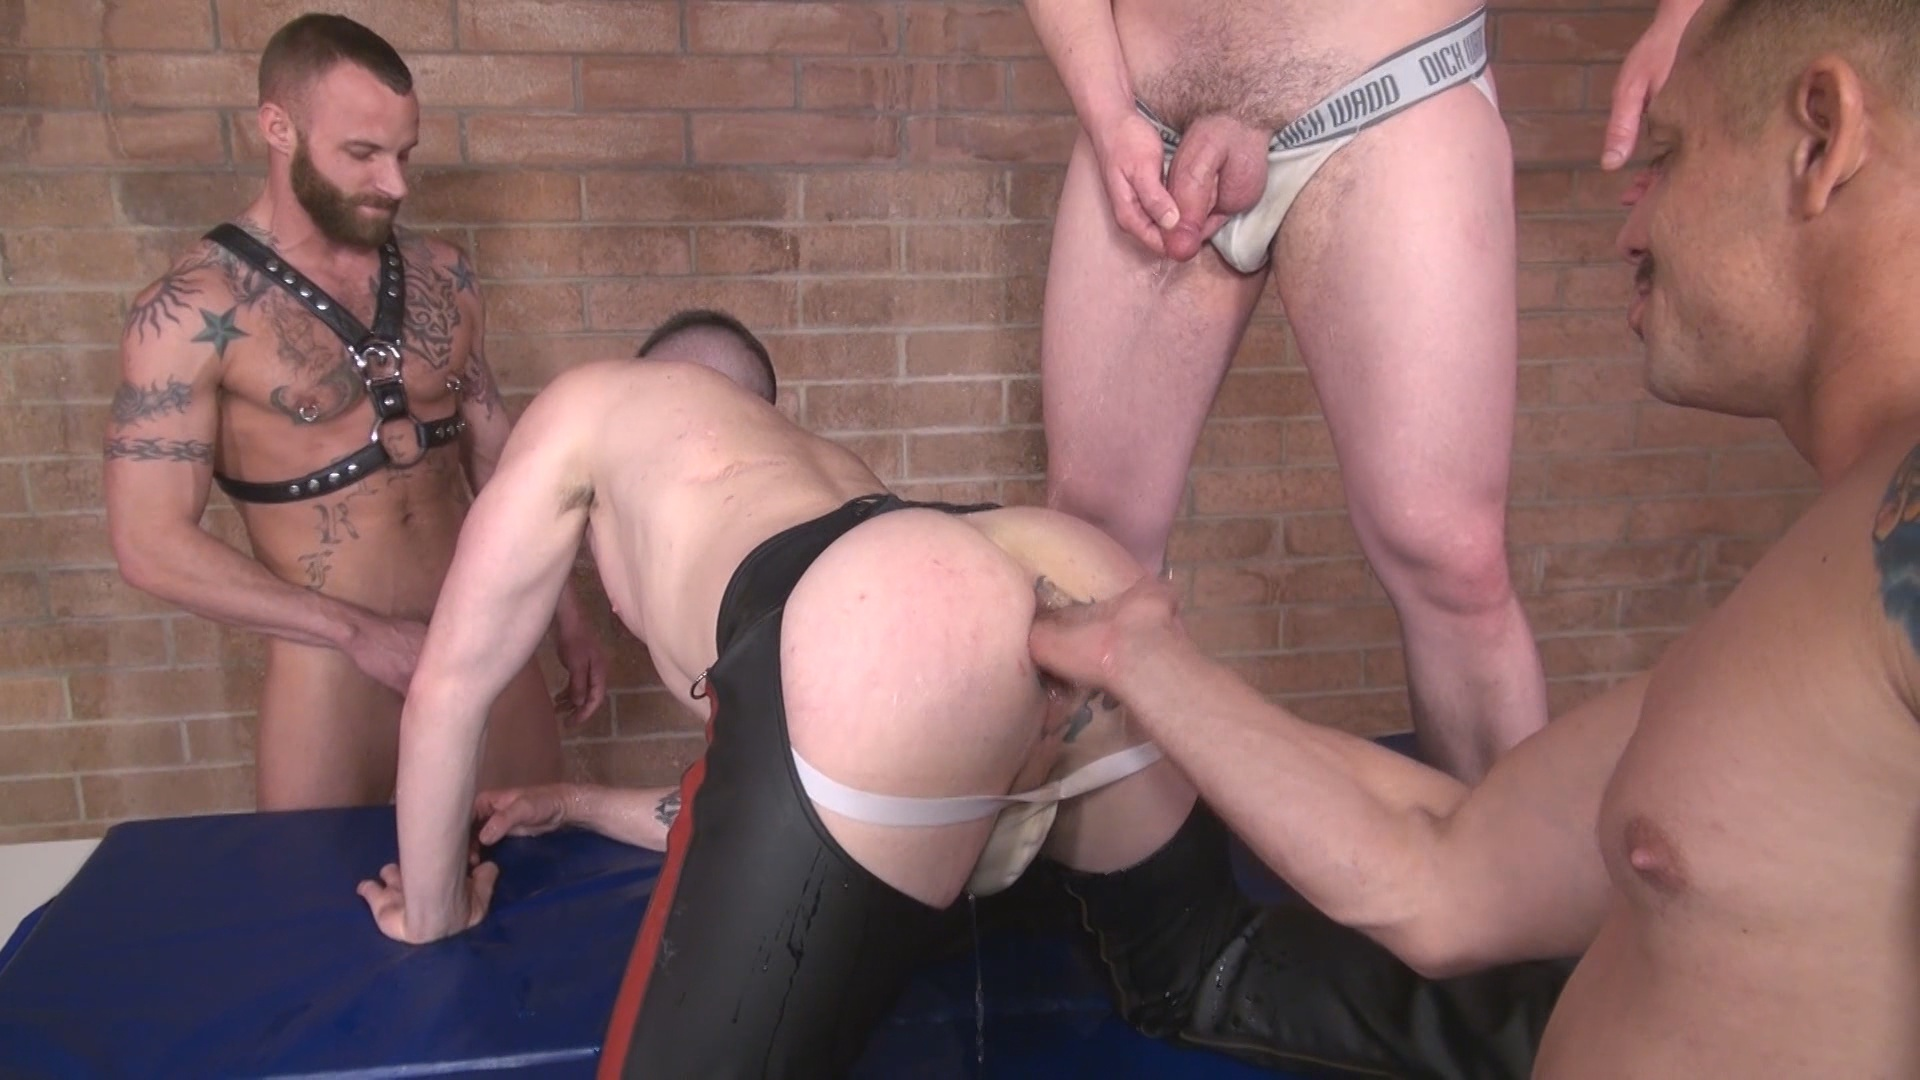 Pigs Xvideo gay